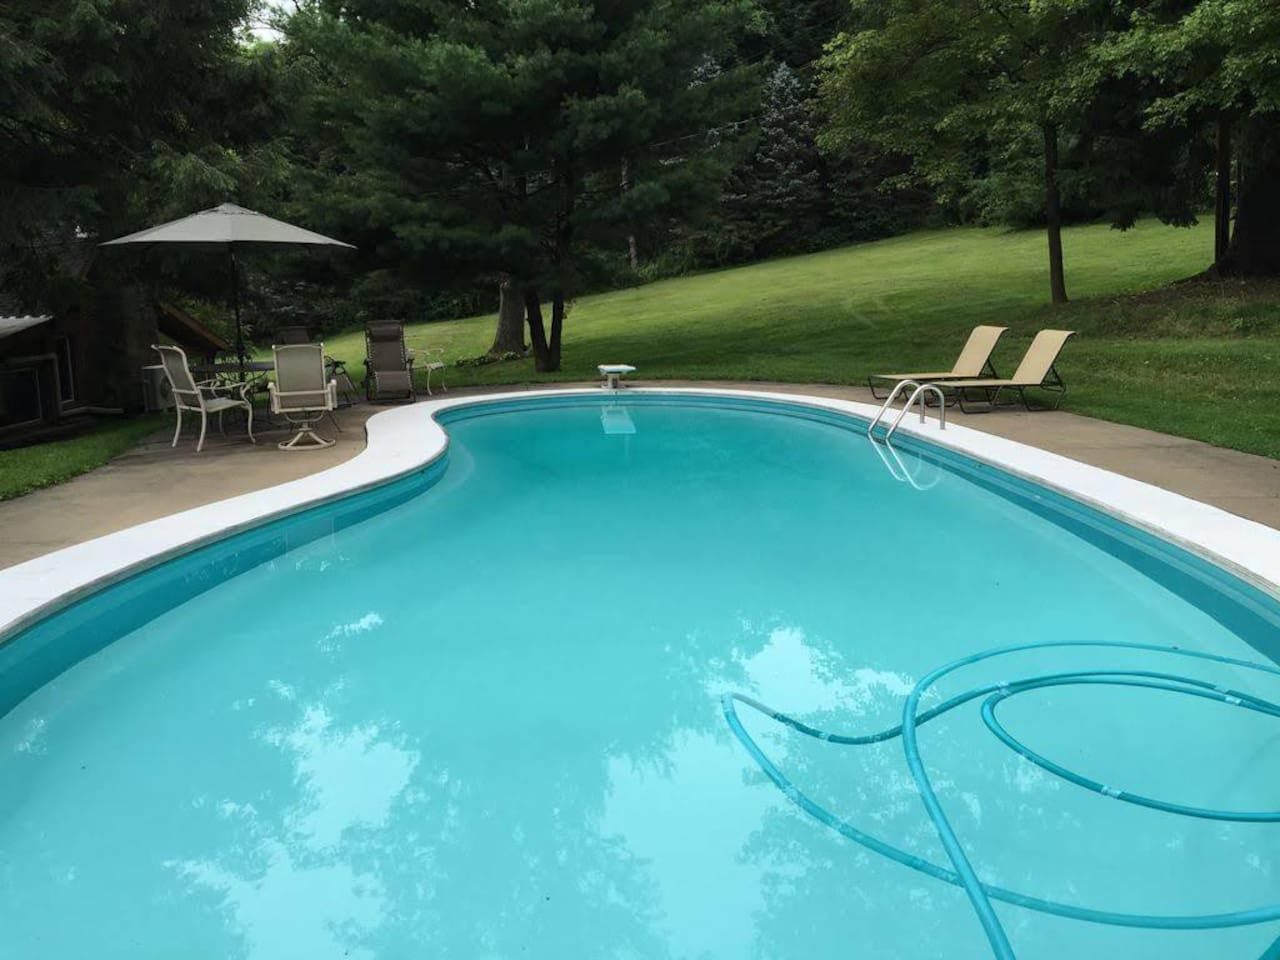 12ft deep with diving board, open from May 1st-October 1st